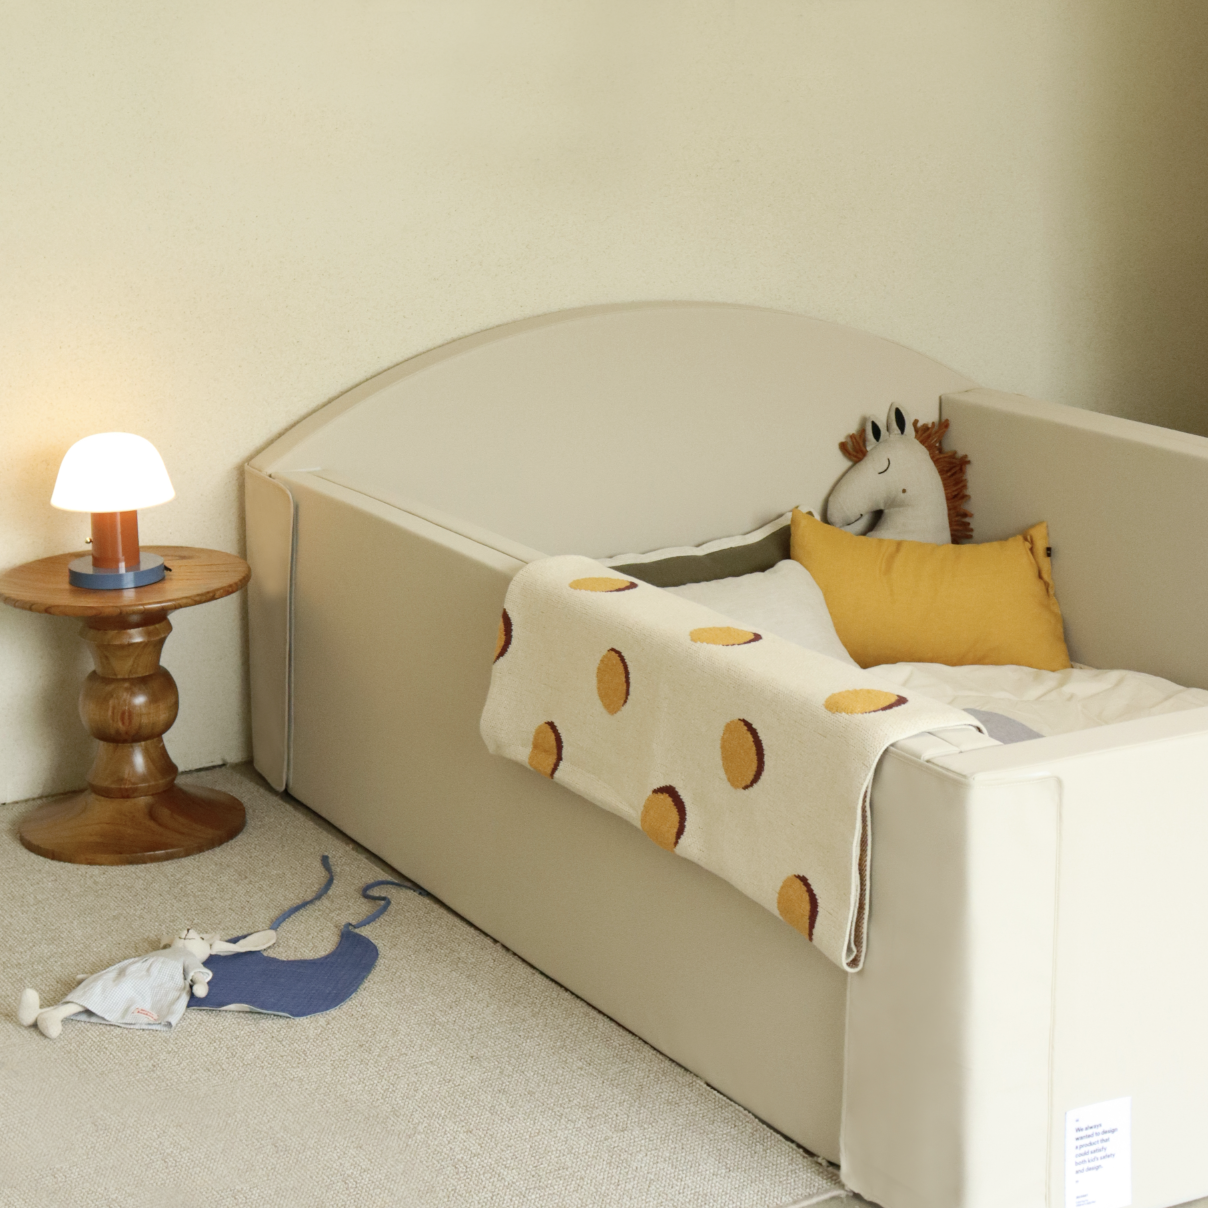 Bumper Bed - 'Cinamon Beige'